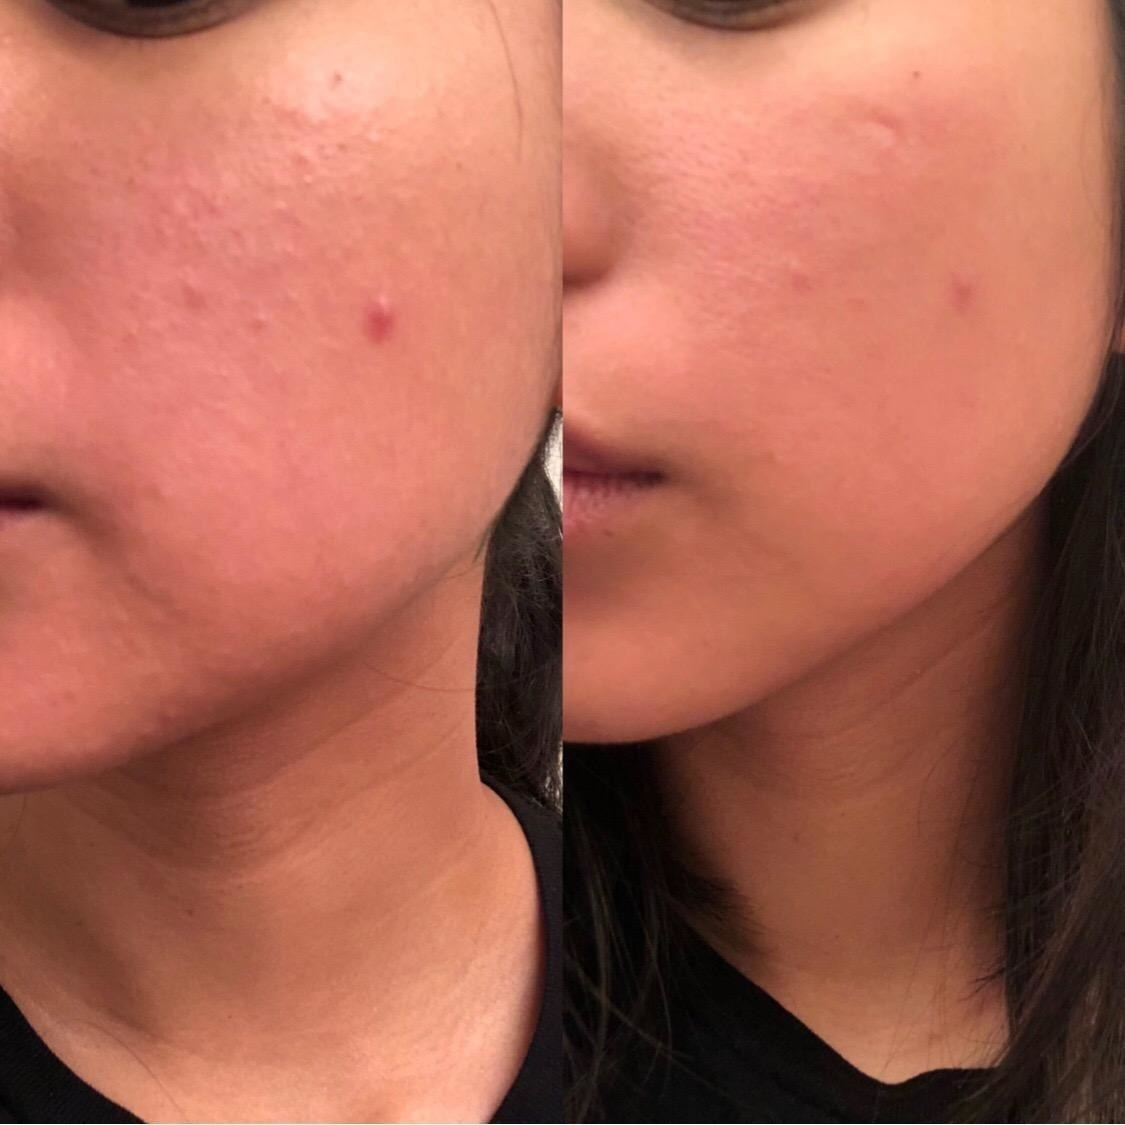 reviewer's skin red and bumpy in before picture, then smoother, calmer, and with diminished pimples in second picture after using product